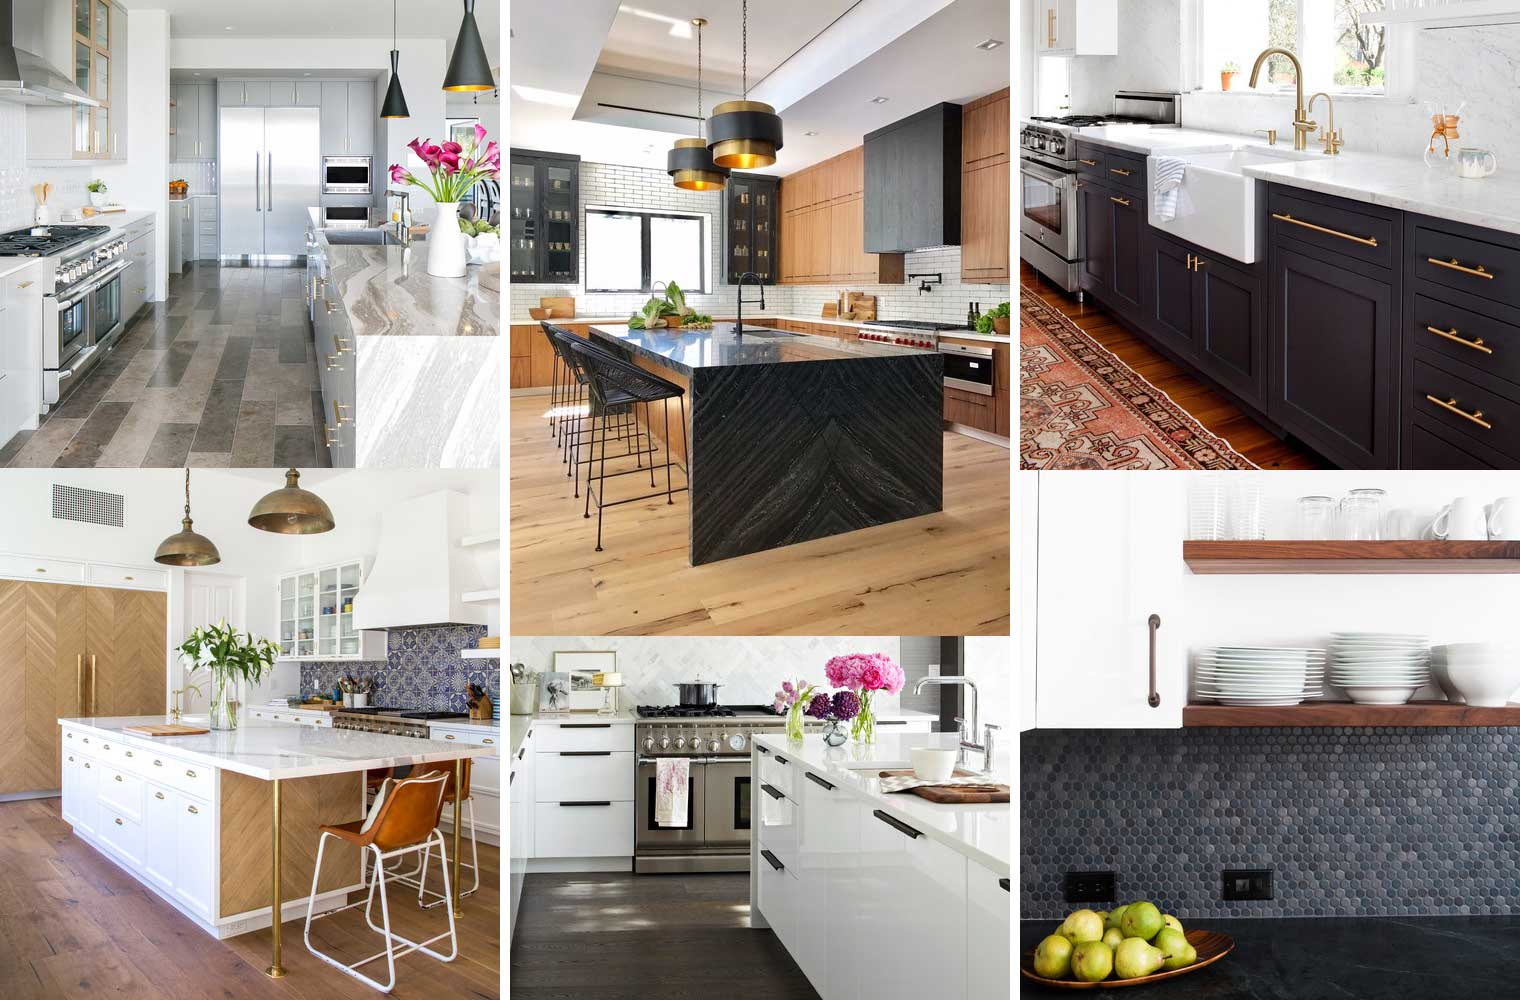 Remodel Design The Latest Kitchen Design Trends To Consider For Your Remodel